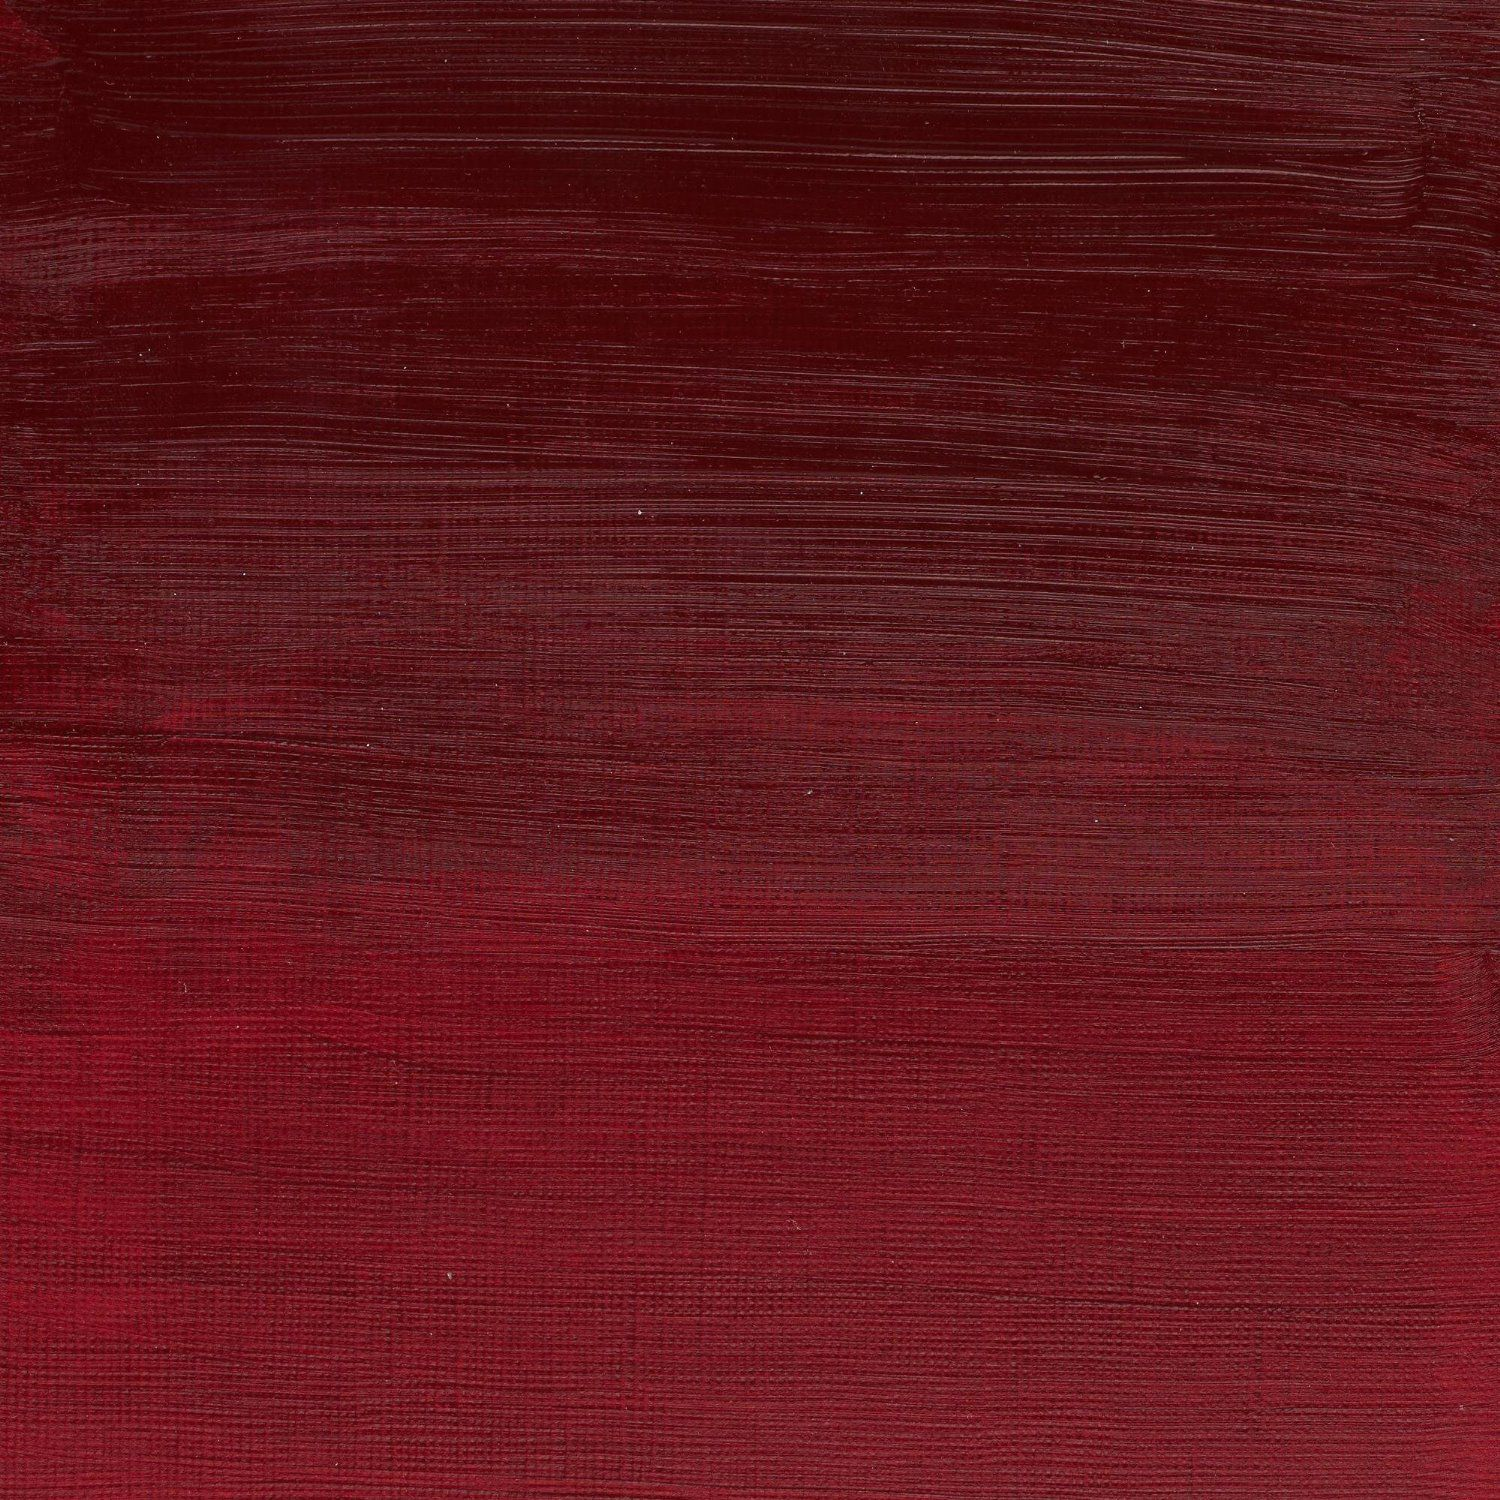 Article 112150 purple bedroom colors - How To Mix The Color Maroon